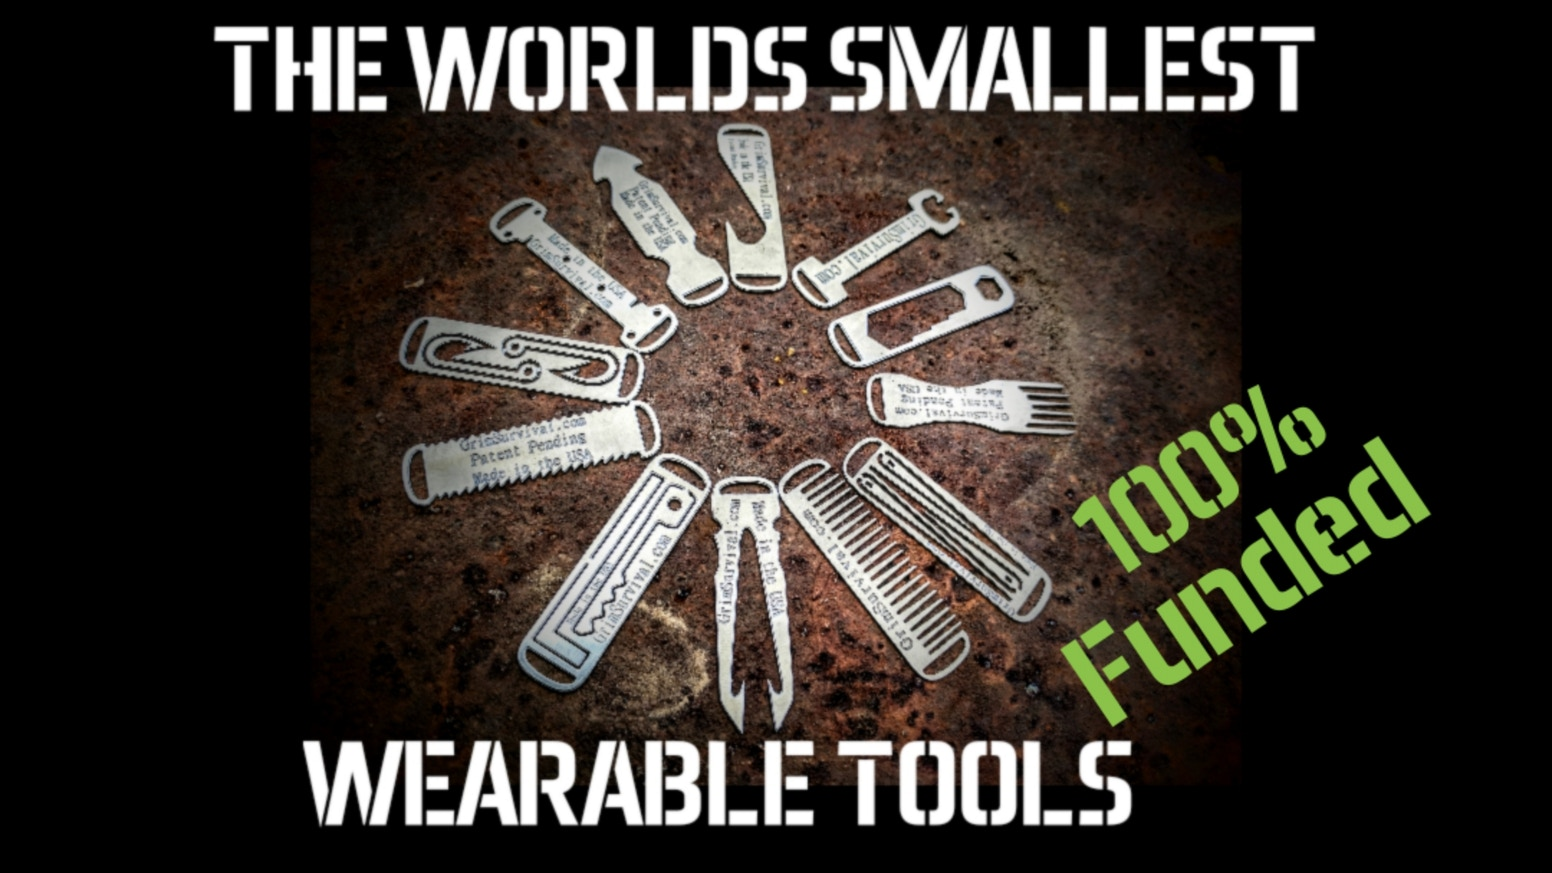 The worlds smallest tool kits can turn your backpack, keychain, anything it can attach to into a mobile EDC kit